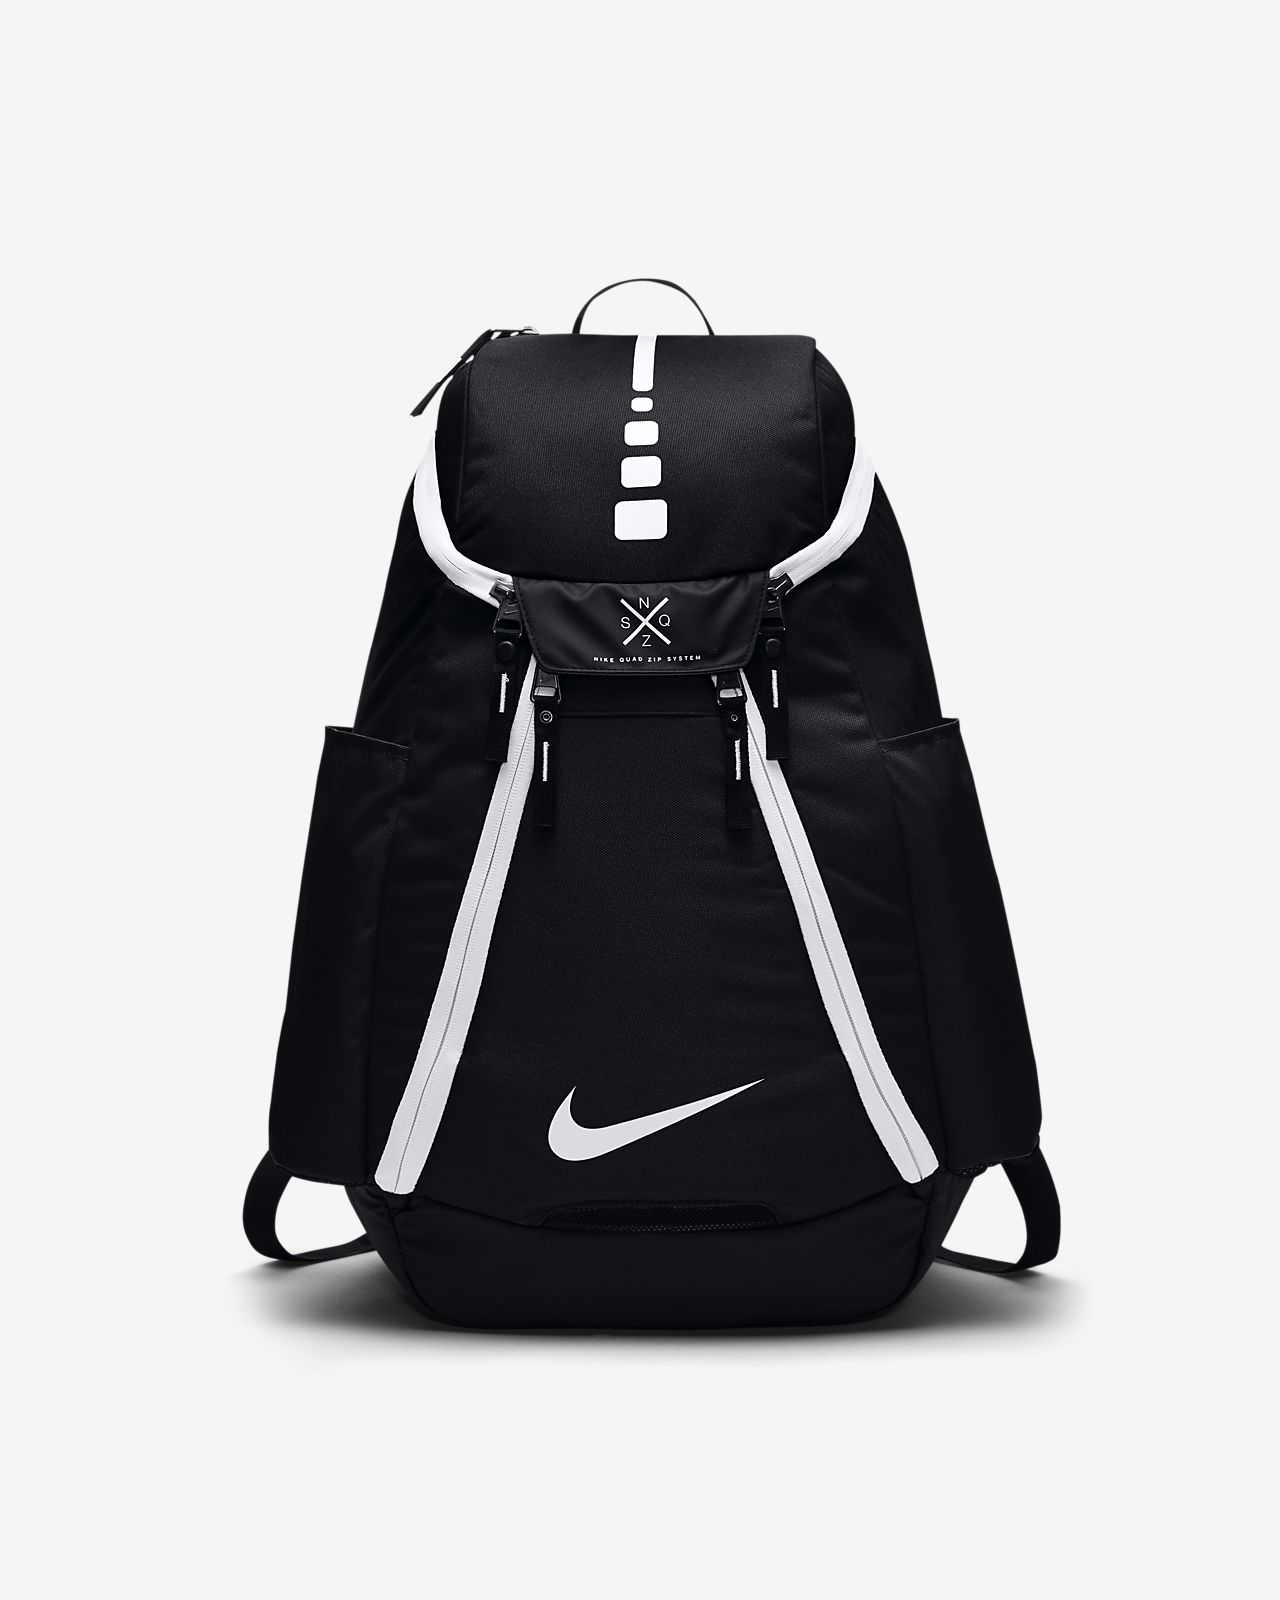 6d9dcbba48b68 Nike Hoops Elite Max Air Team 2.0 Basketball Backpack. Nike.com ID